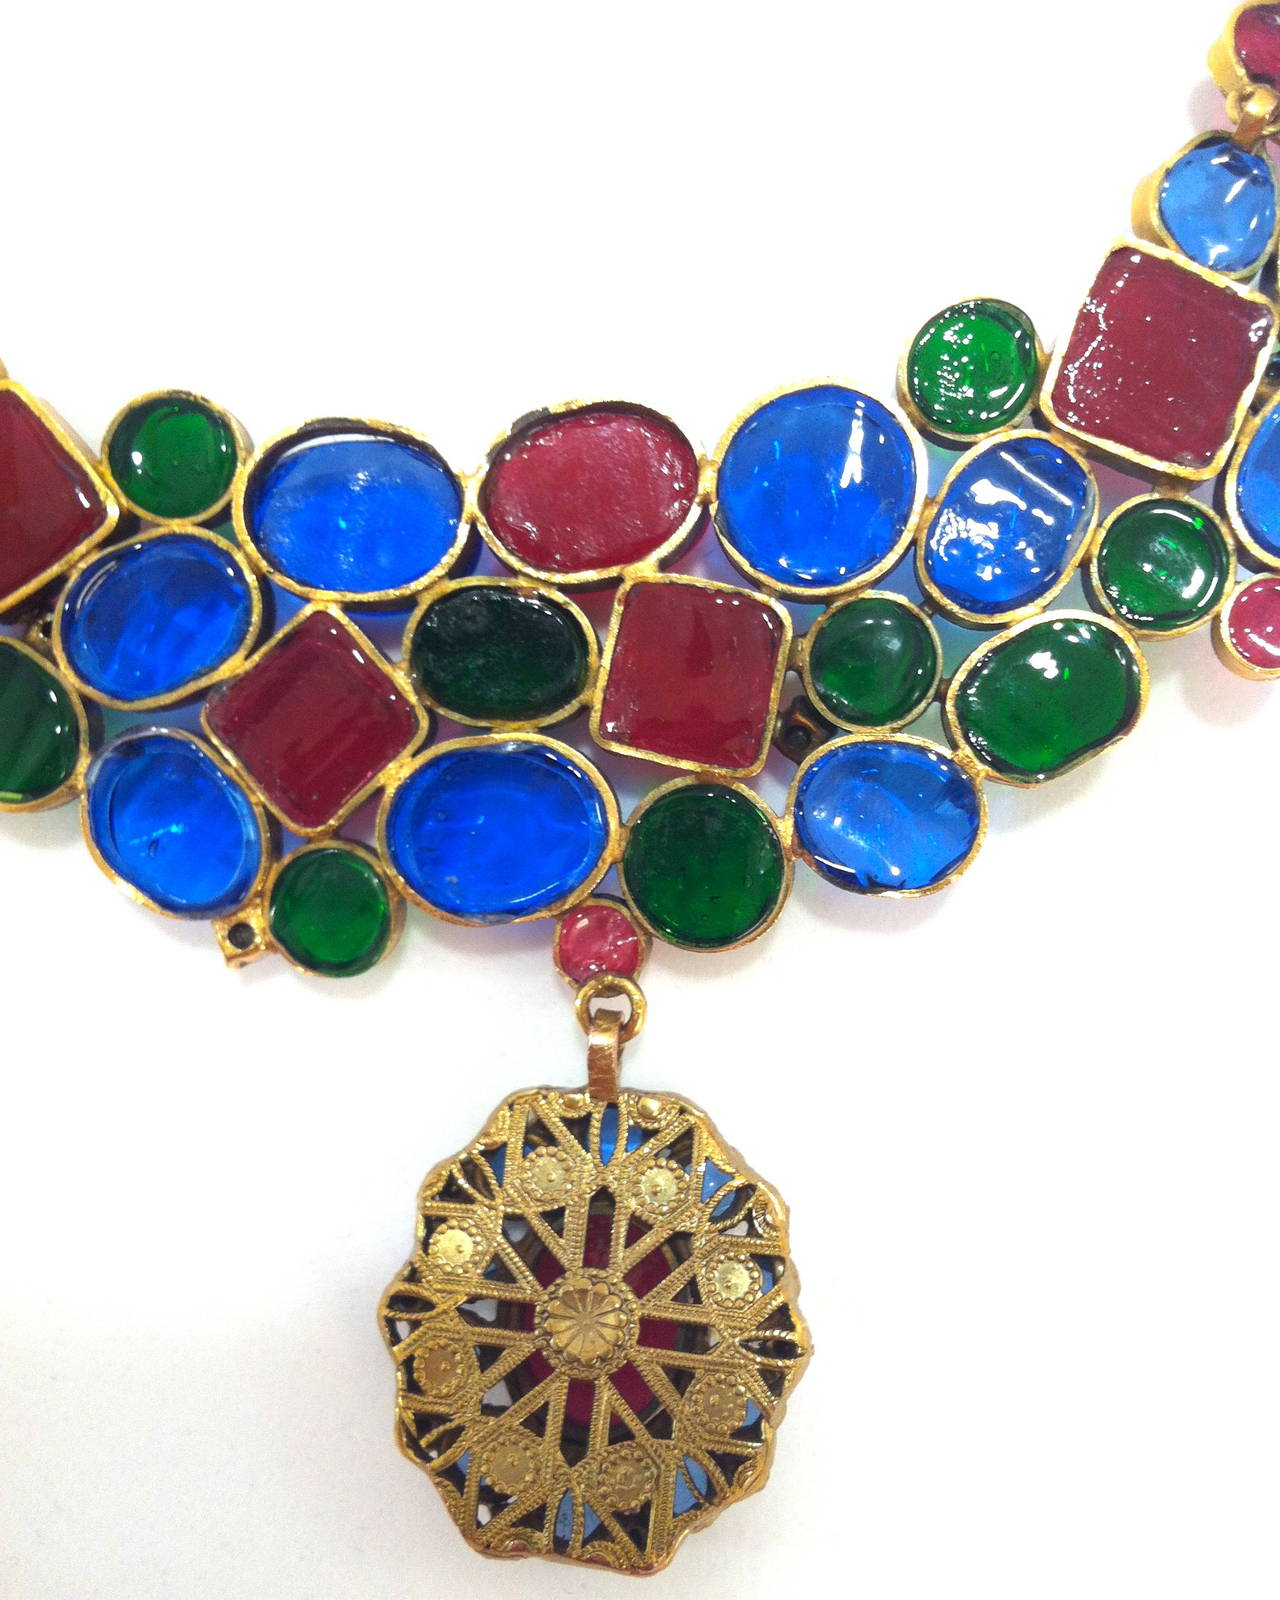 Rare 1970's Mademoiselle Chanel  Byzantine Necklace by Gripoix 4